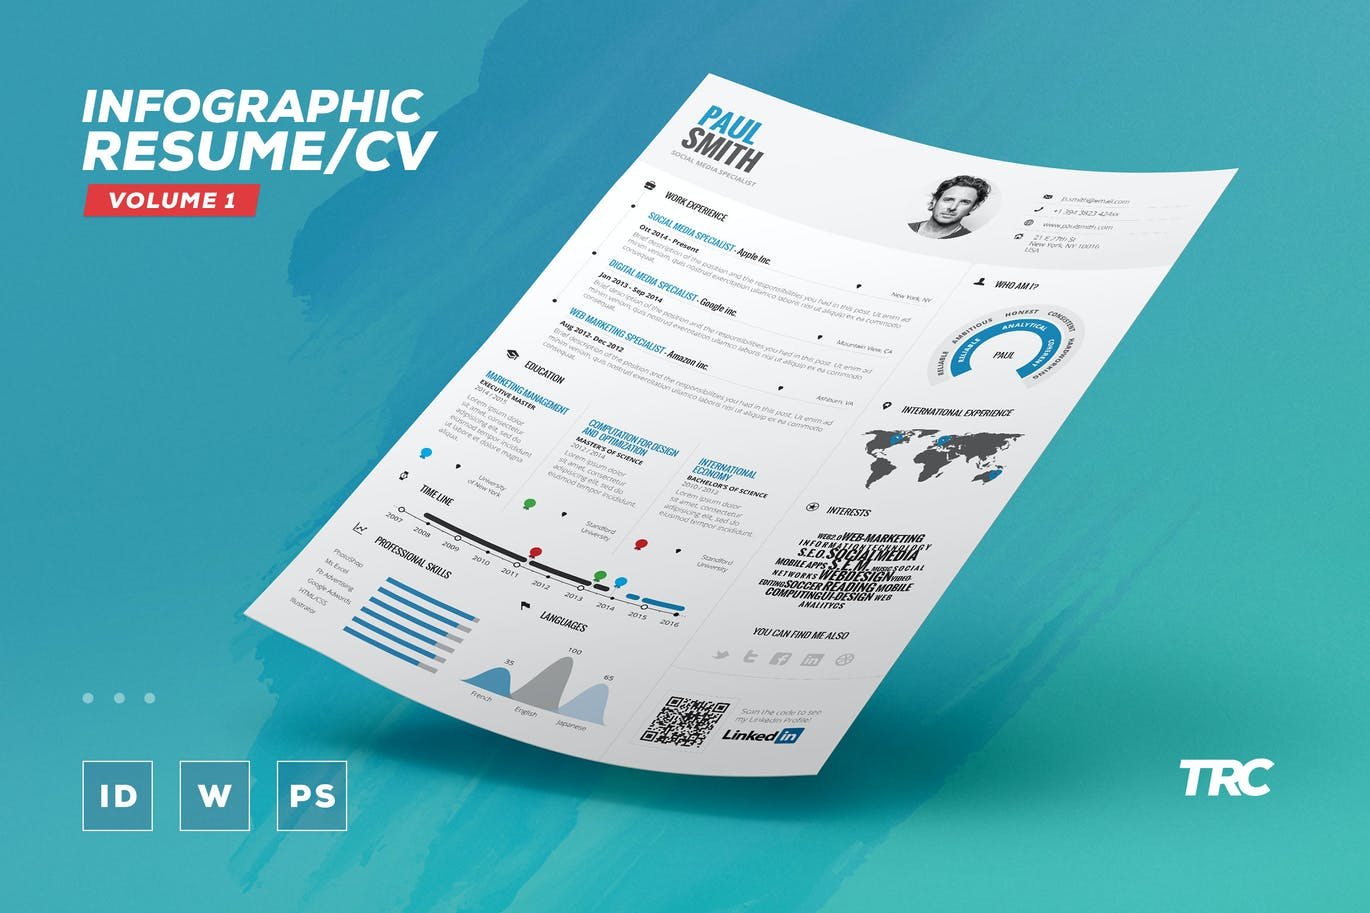 Infographic Resume/Cv Volume 1 By Paolo6180 On Envato Elements